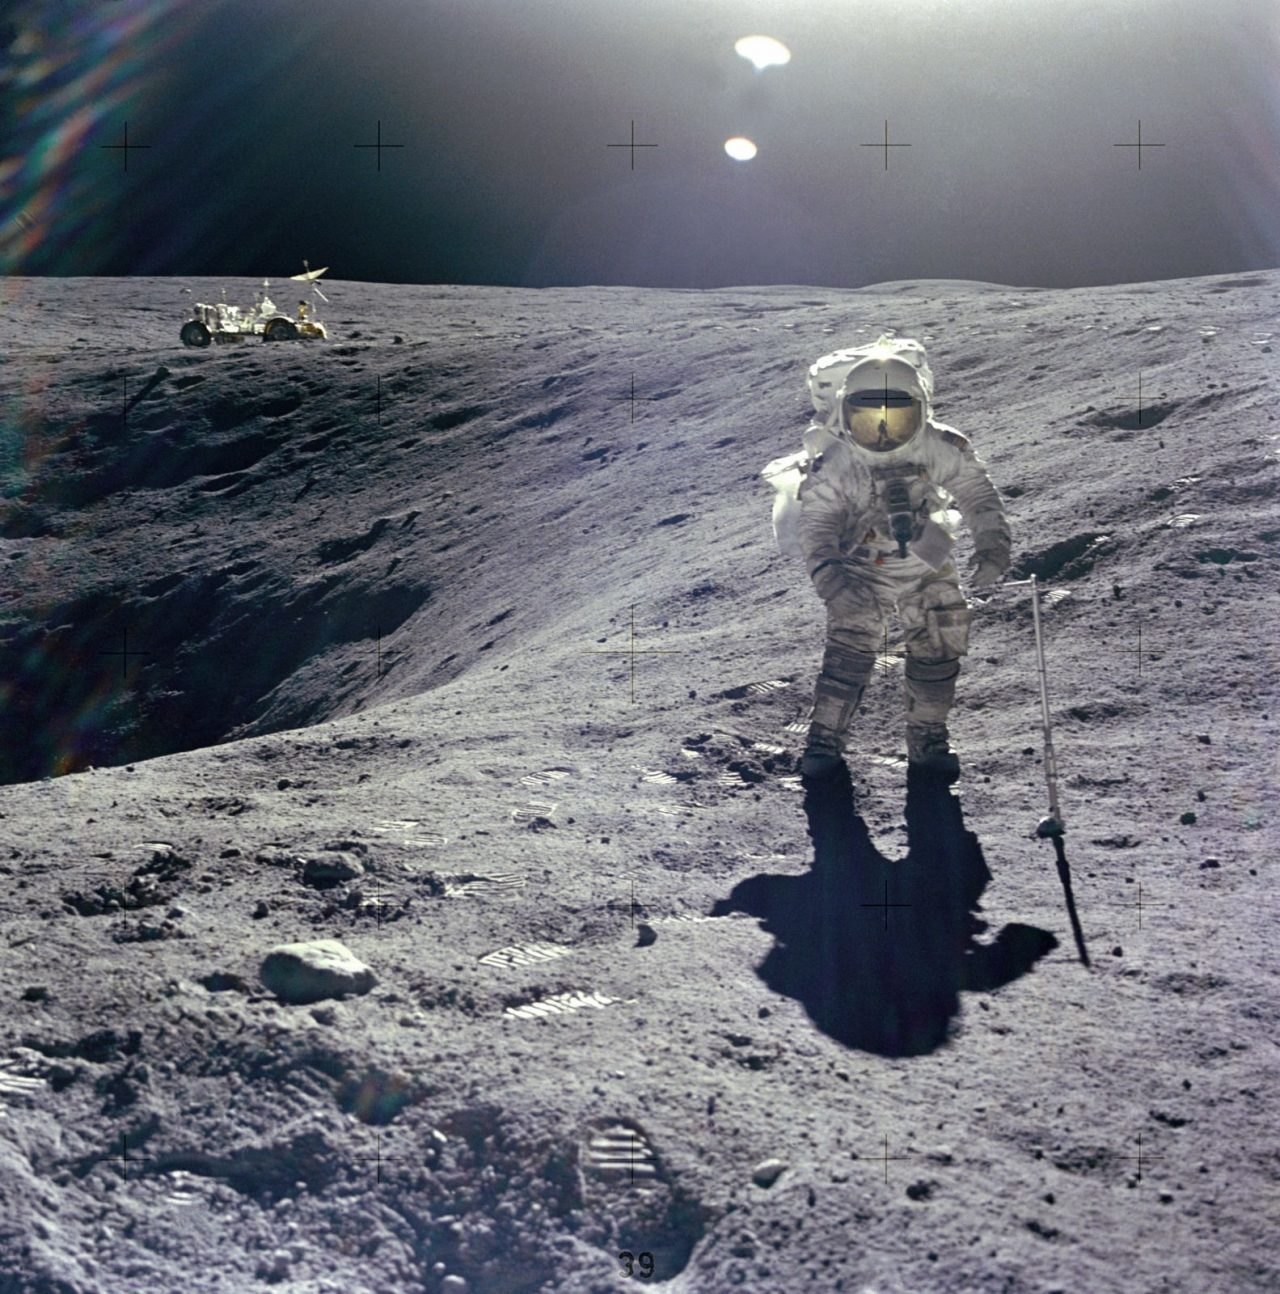 Apollo 16 astronaut Charles Duke standing on the rim of Plum crater, which is 131 feet (40 meters) in diameter and about 33 feet (10 meters) deep. Image Credit: NASA